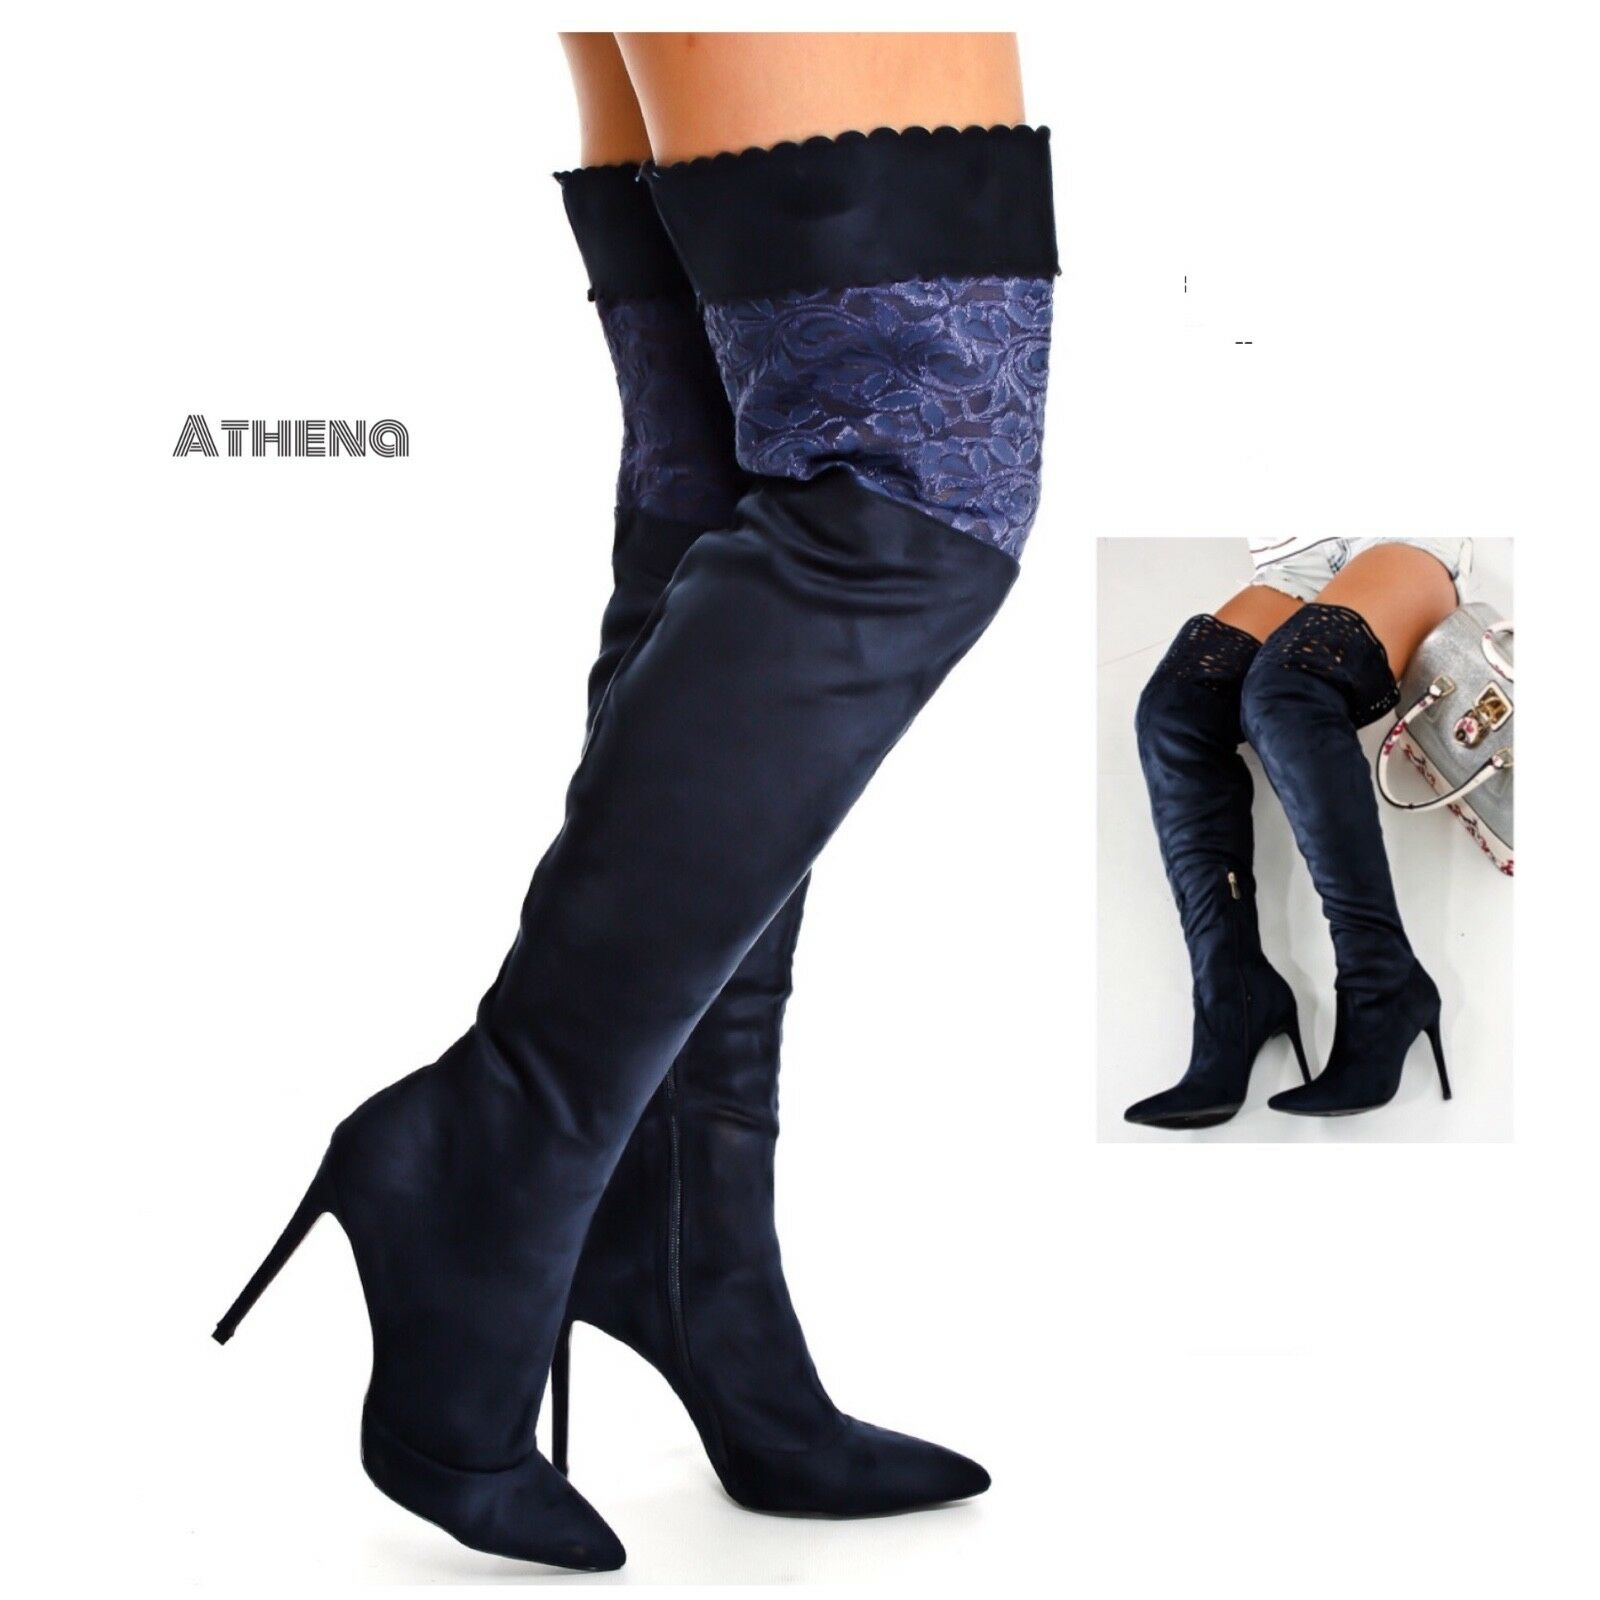 New Women's Over The Knee High Lace Partial Zipper Stiletto Heel Boots